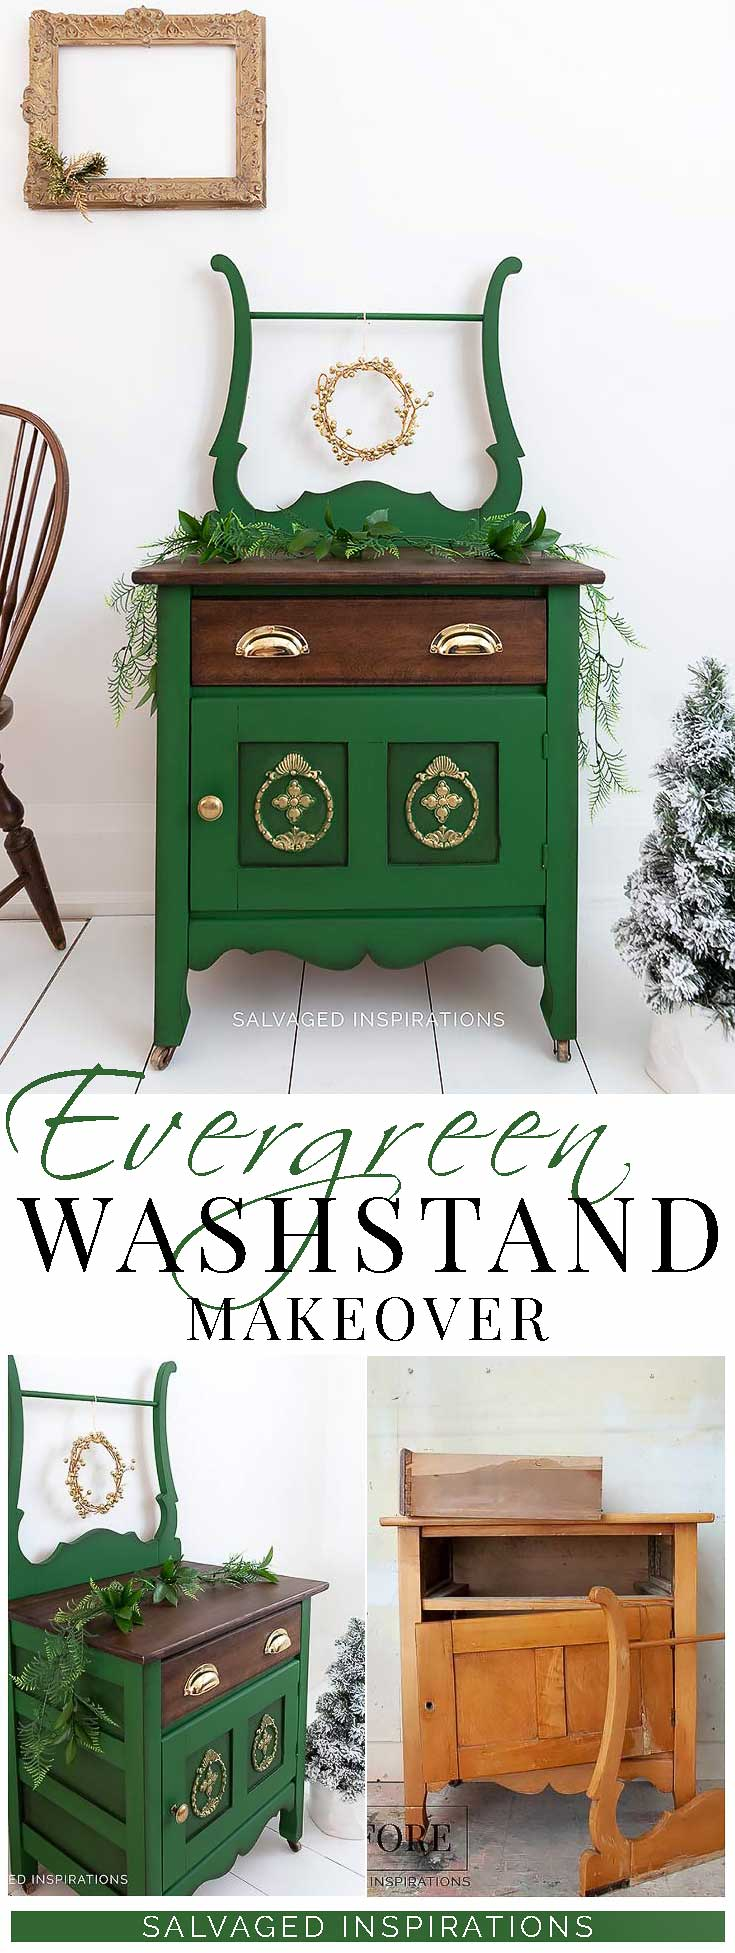 Evergreen Washstand Makeover - Painted and Stained